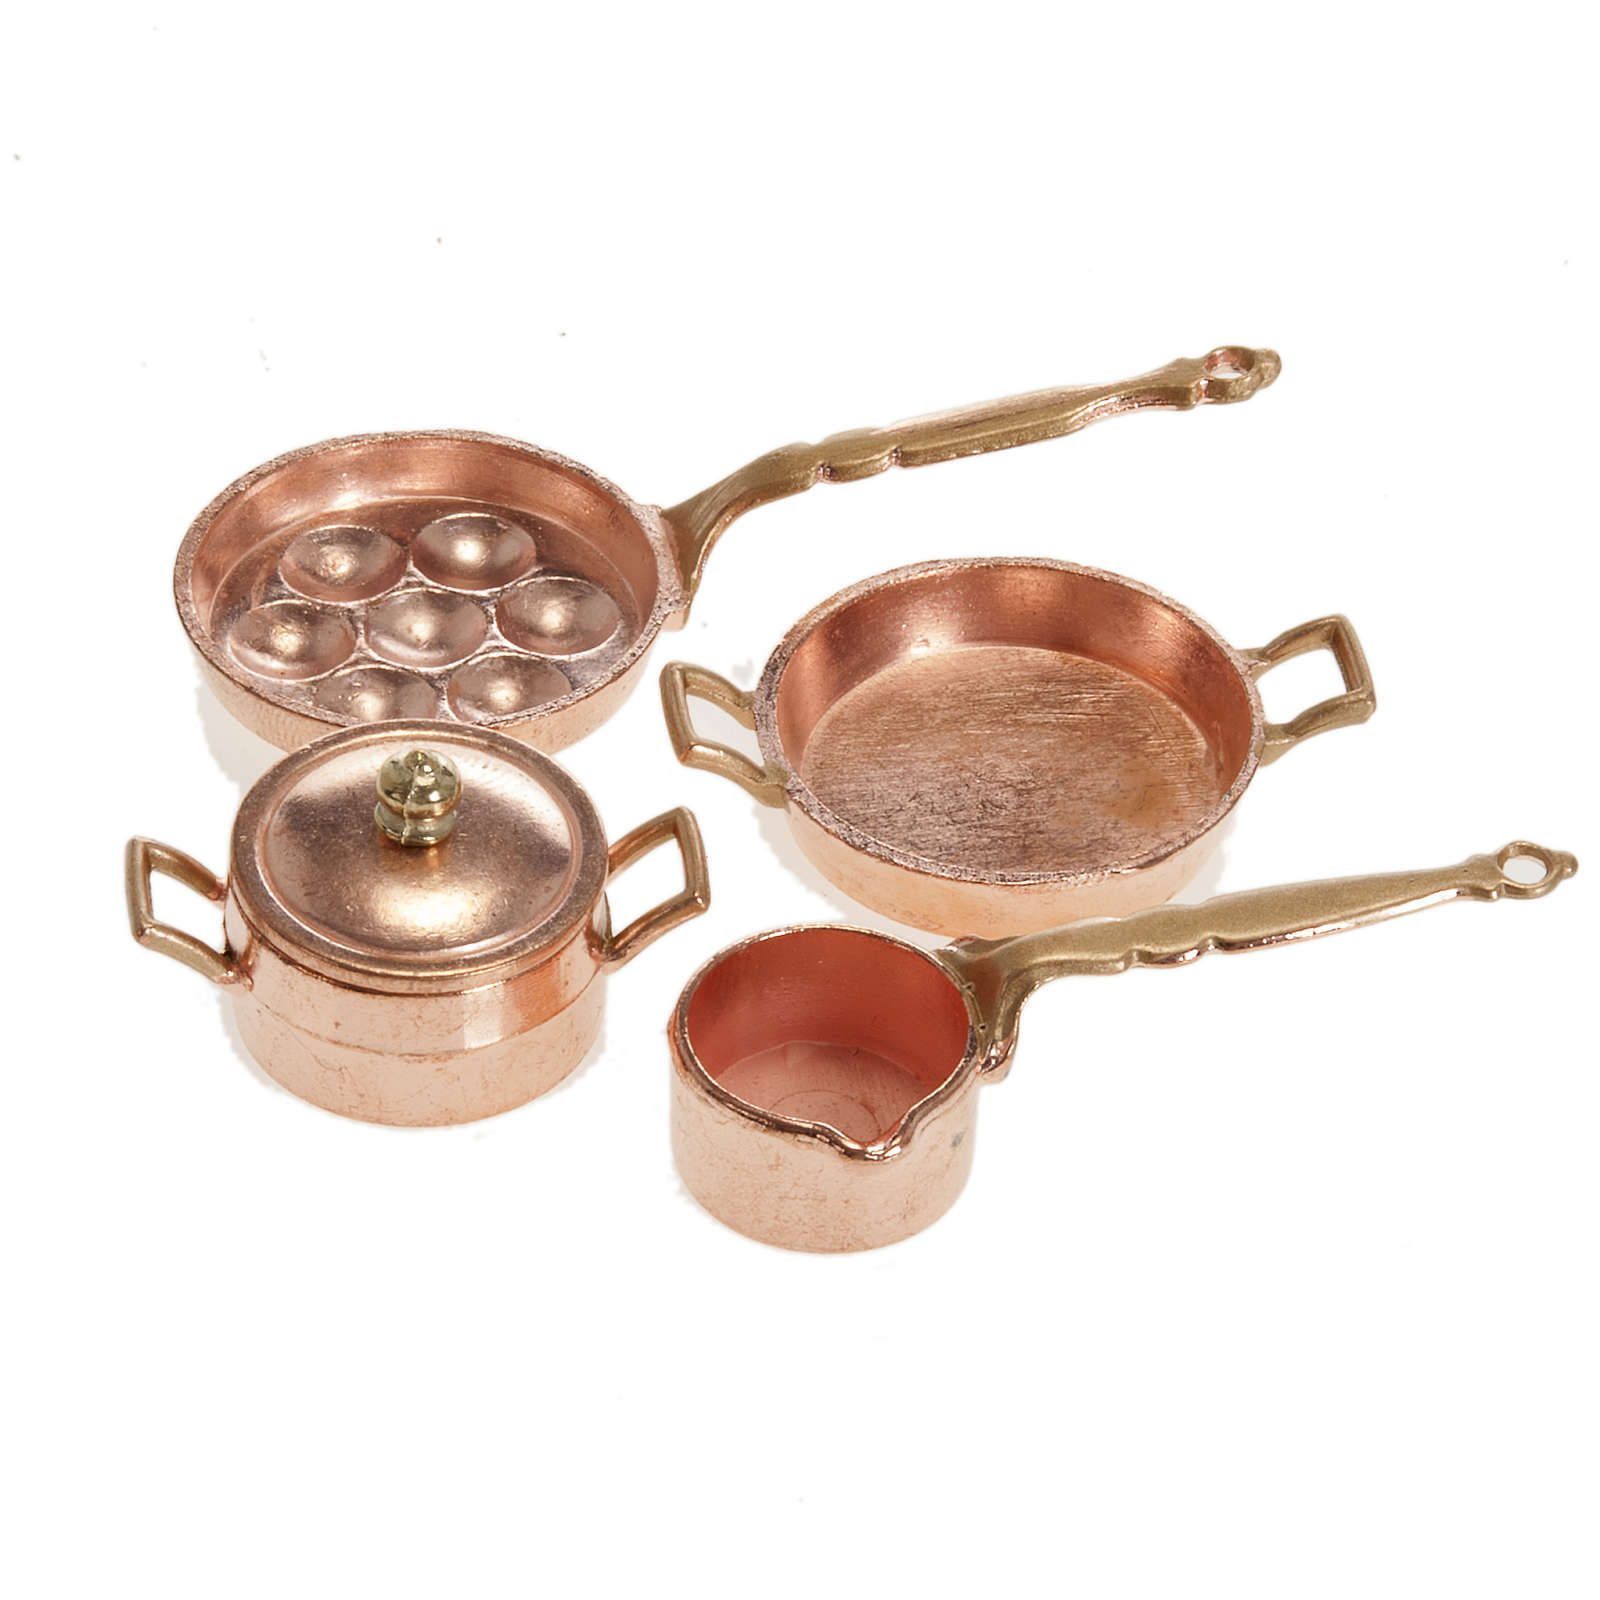 Nativity accessory, pans and pots in metal, set of 4 pieces 4